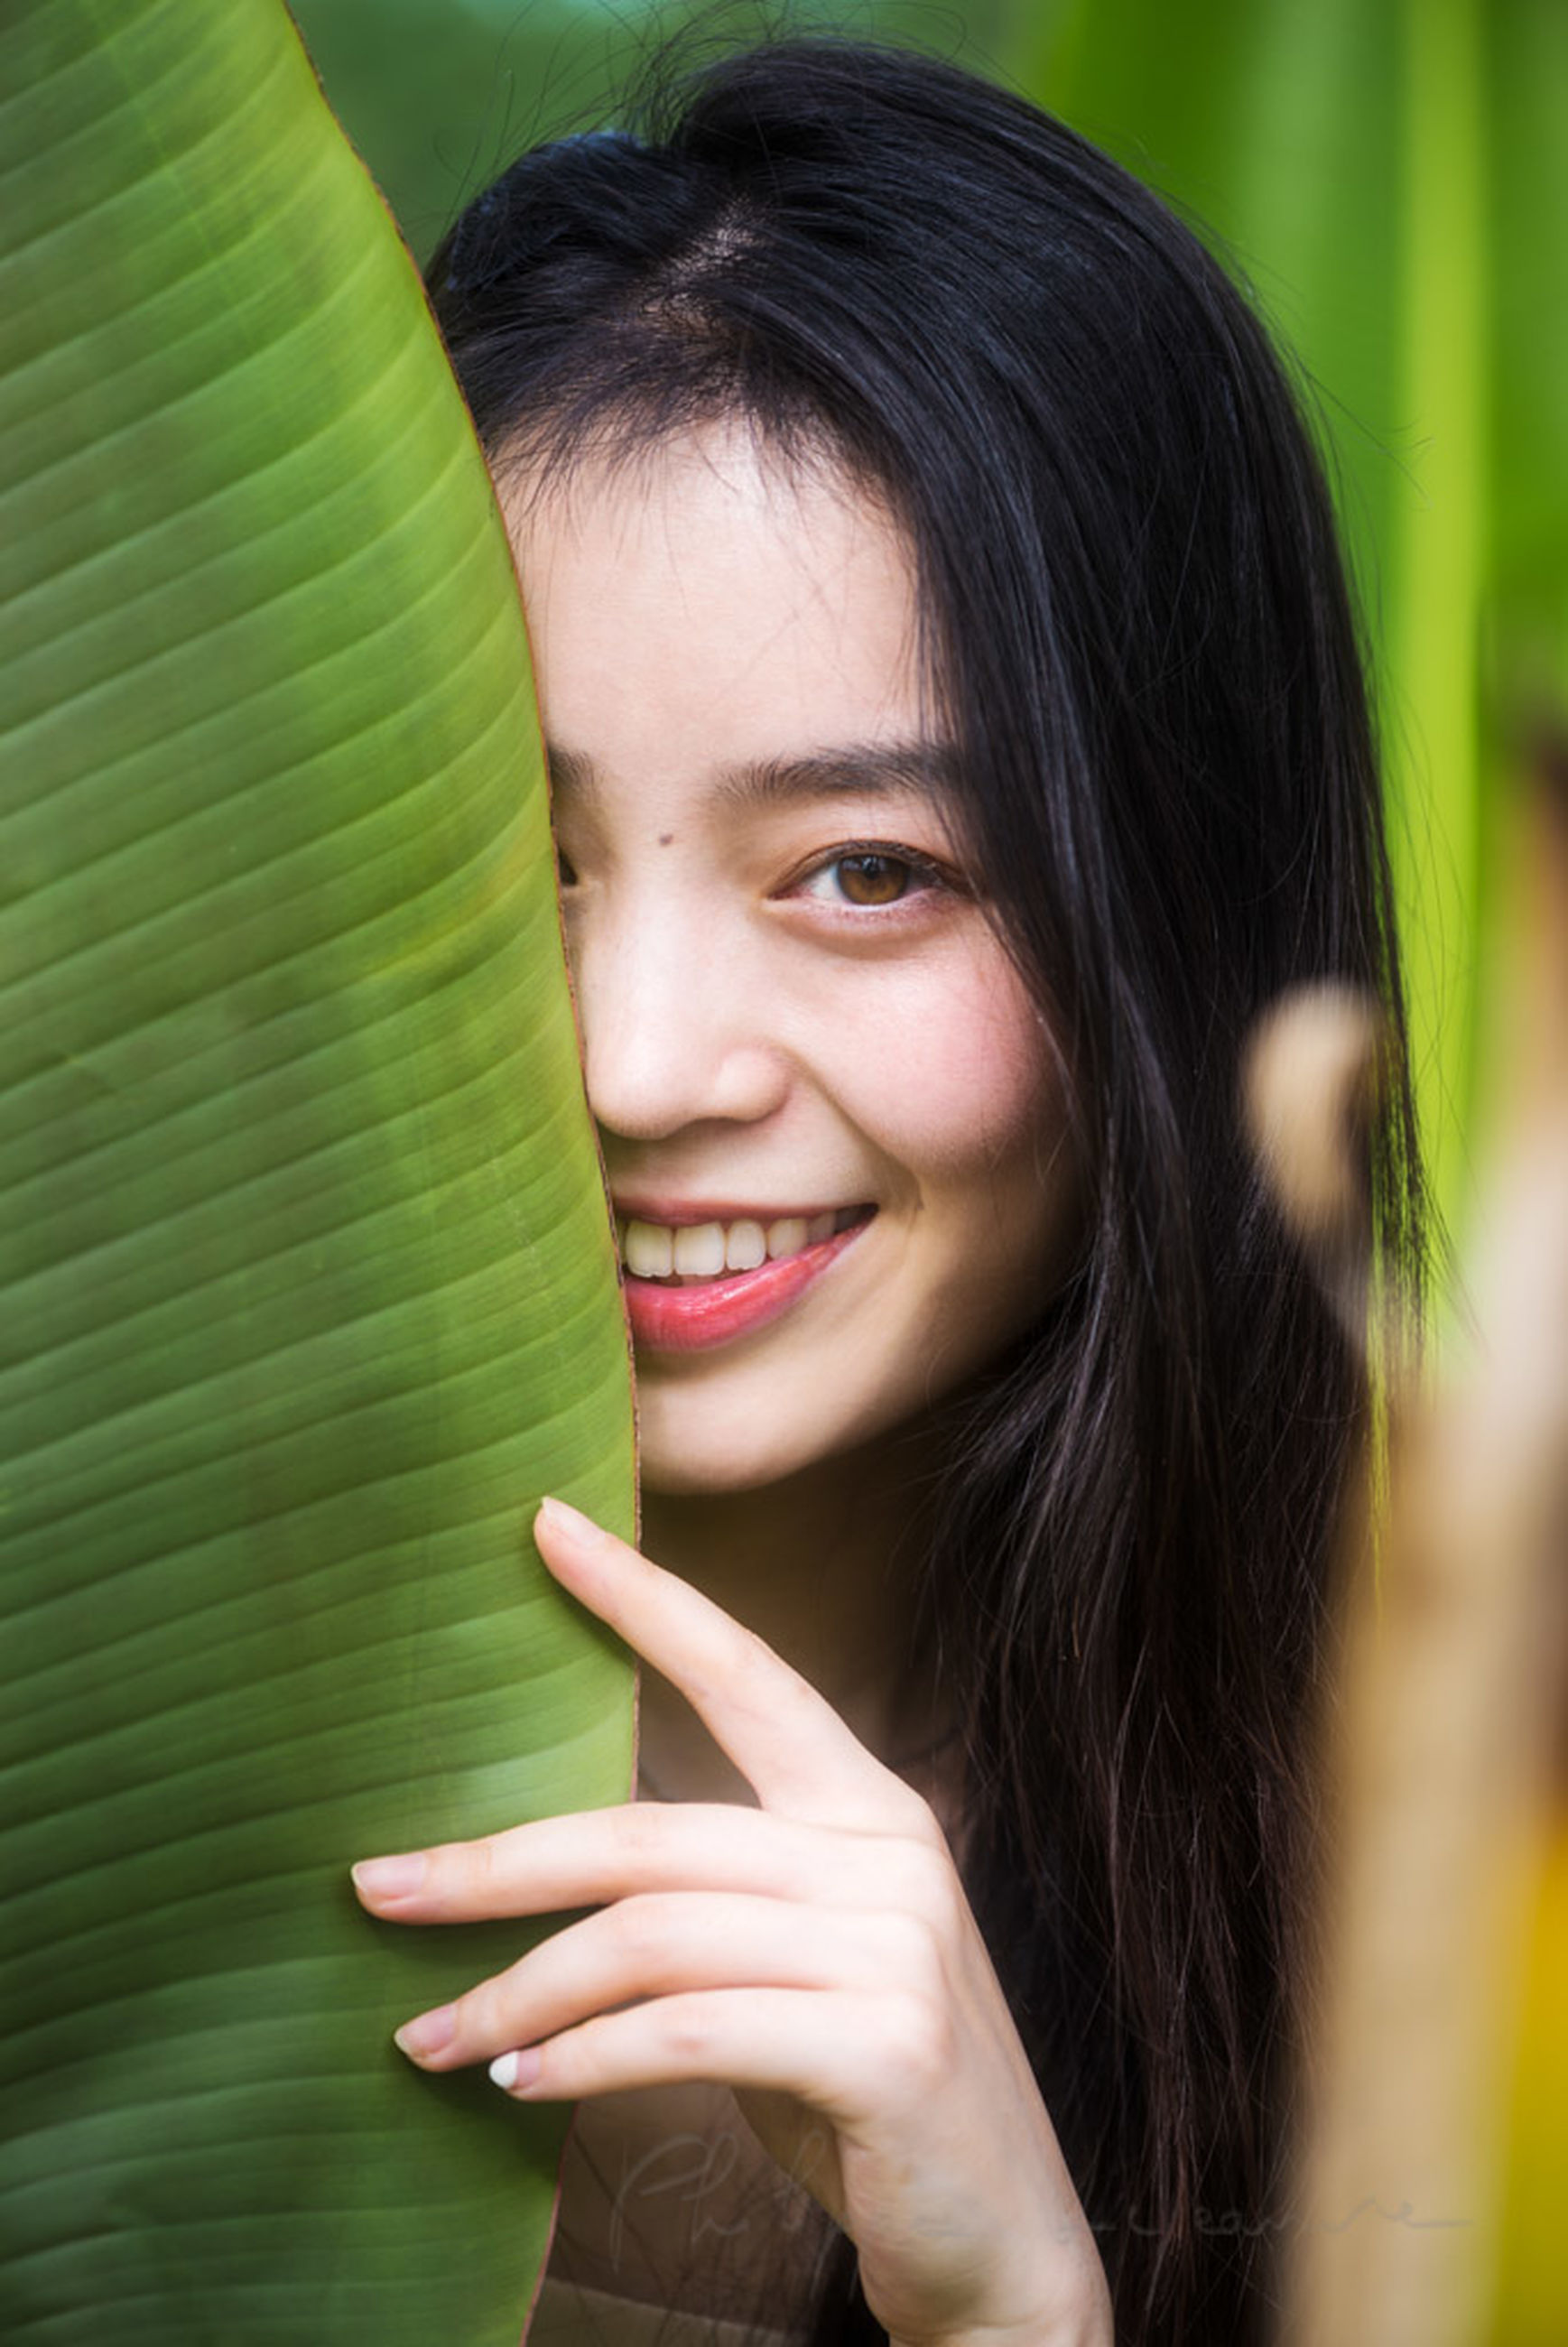 smiling, portrait, one person, happiness, green, women, close-up, female, adult, portrait photography, skin, cheerful, teenager, emotion, long hair, person, human face, hairstyle, looking at camera, young adult, headshot, photo shoot, teeth, smile, black hair, human eye, positive emotion, hand, nature, leaf, lifestyles, human head, child, plant, cute, brown hair, plant part, holding, outdoors, enjoyment, joy, human hair, childhood